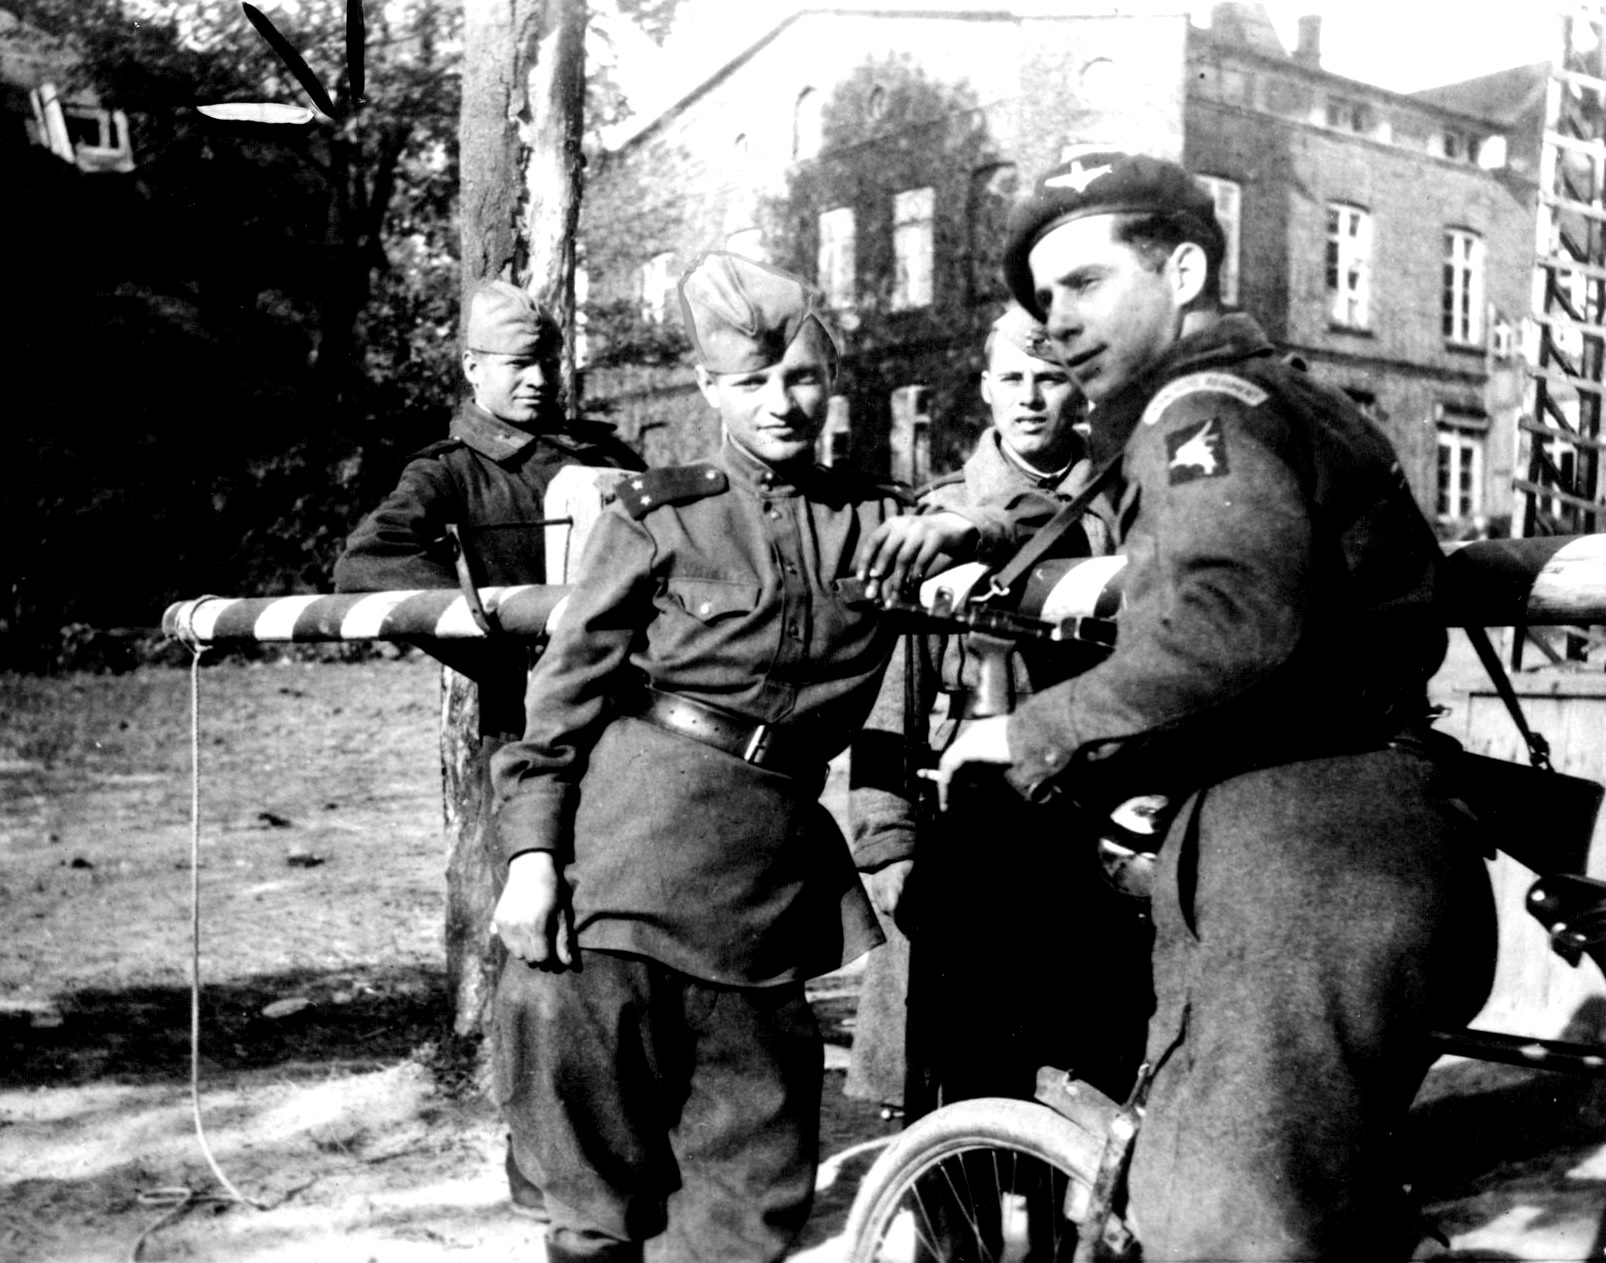 6-A/B Div paratrooper with Russians Wismar May 1945